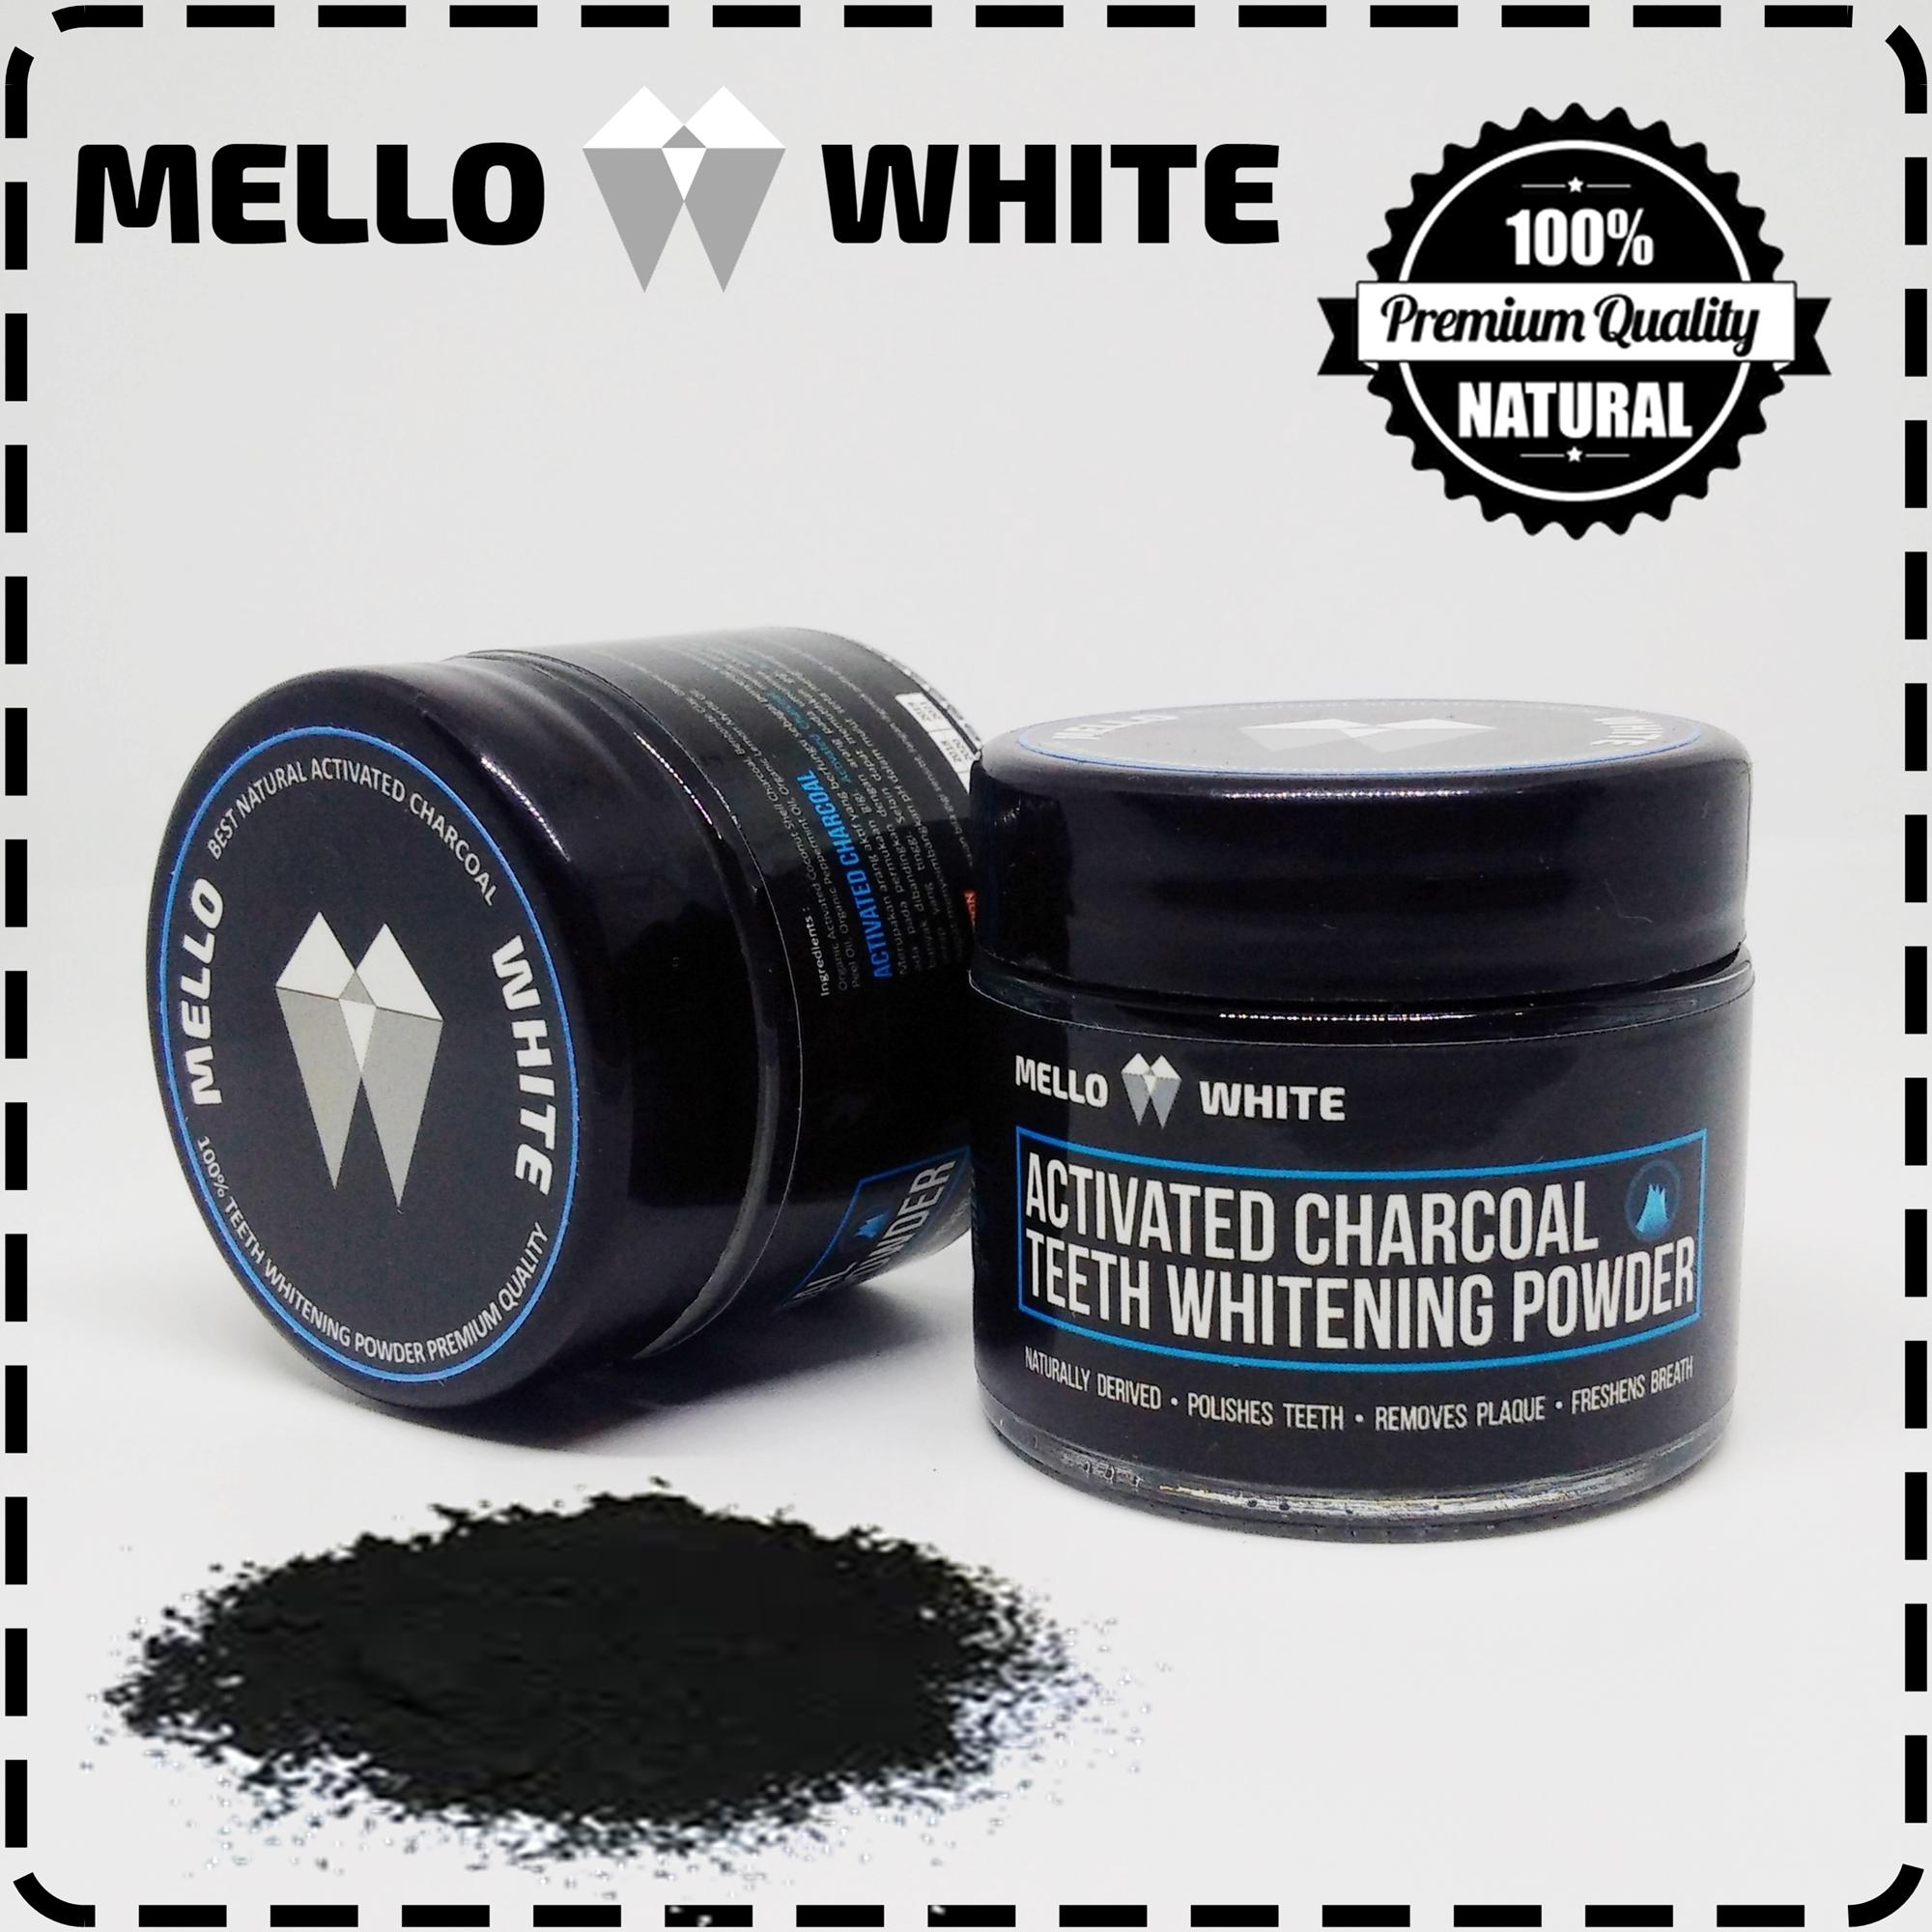 Fitur Teeth Whitening Charcoal Charcoal Powder Activated Teeth